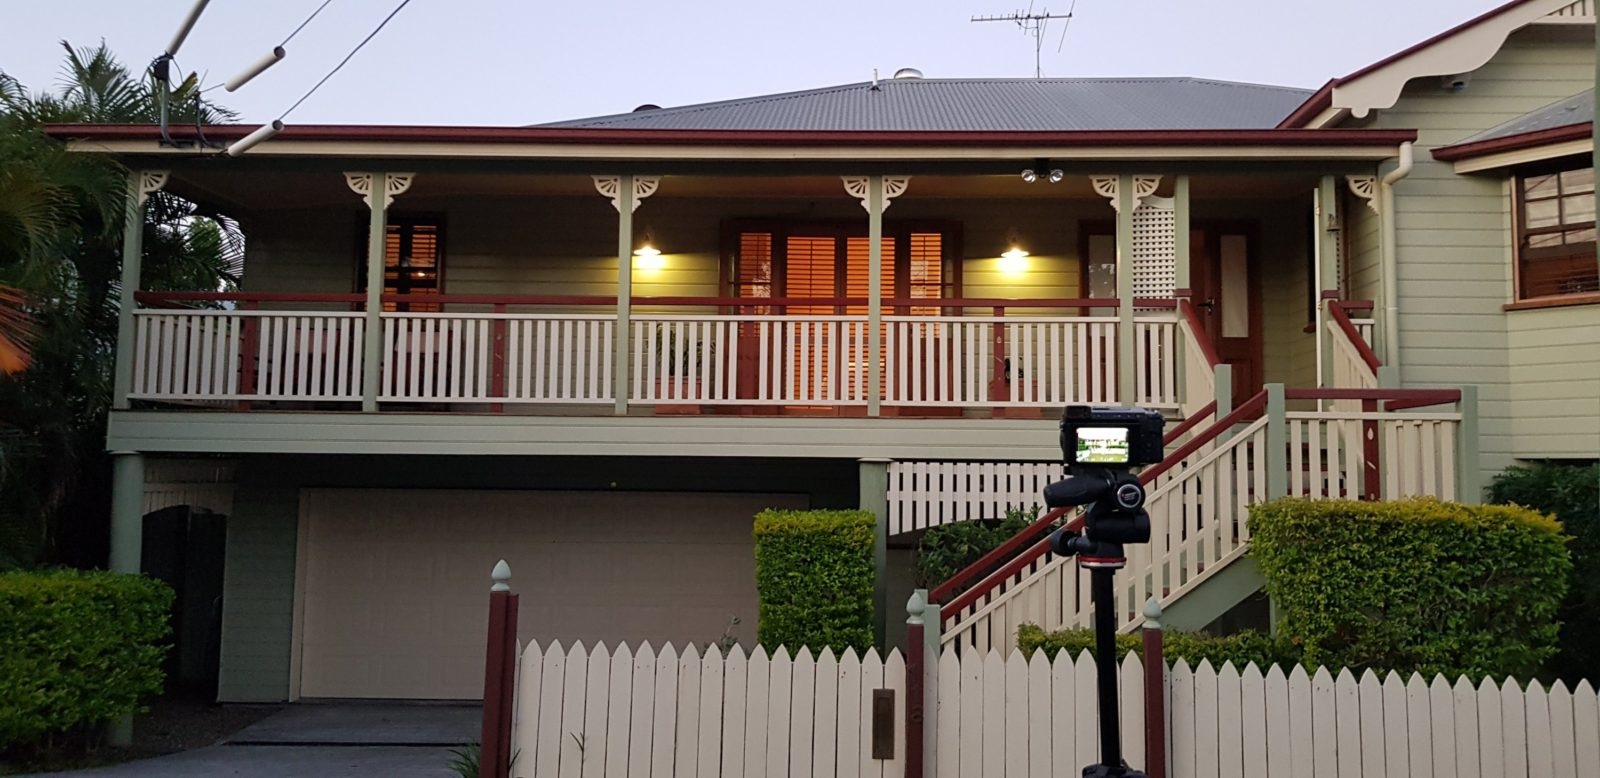 Drone Inspections and Drone Real Estate Photography Brisbane Australia